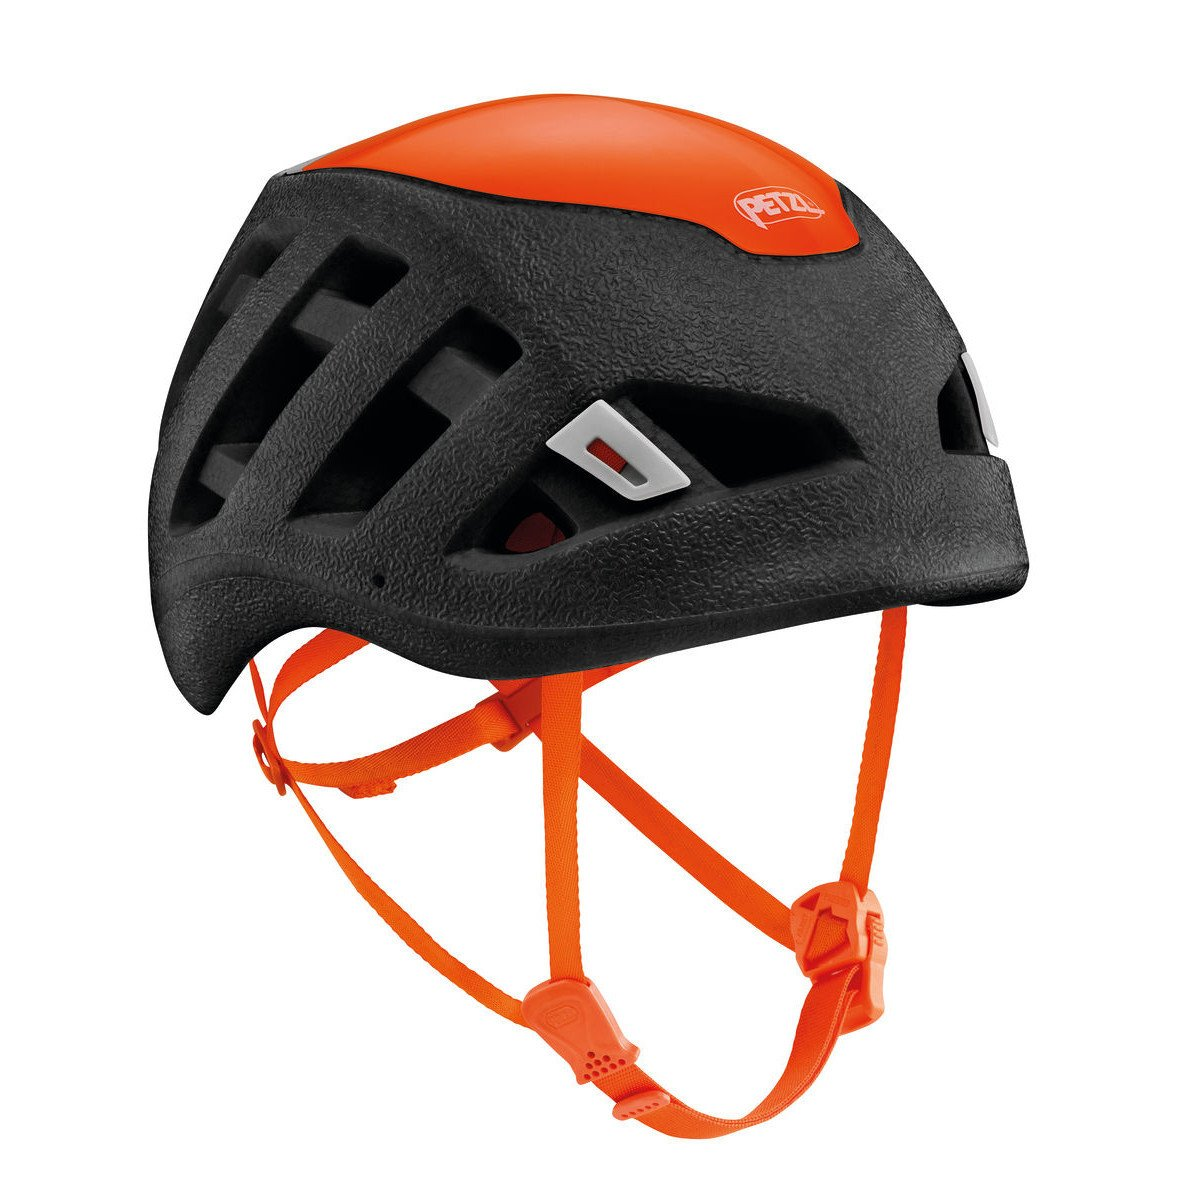 petzl sirocco climbing helmet, in black and orange colours